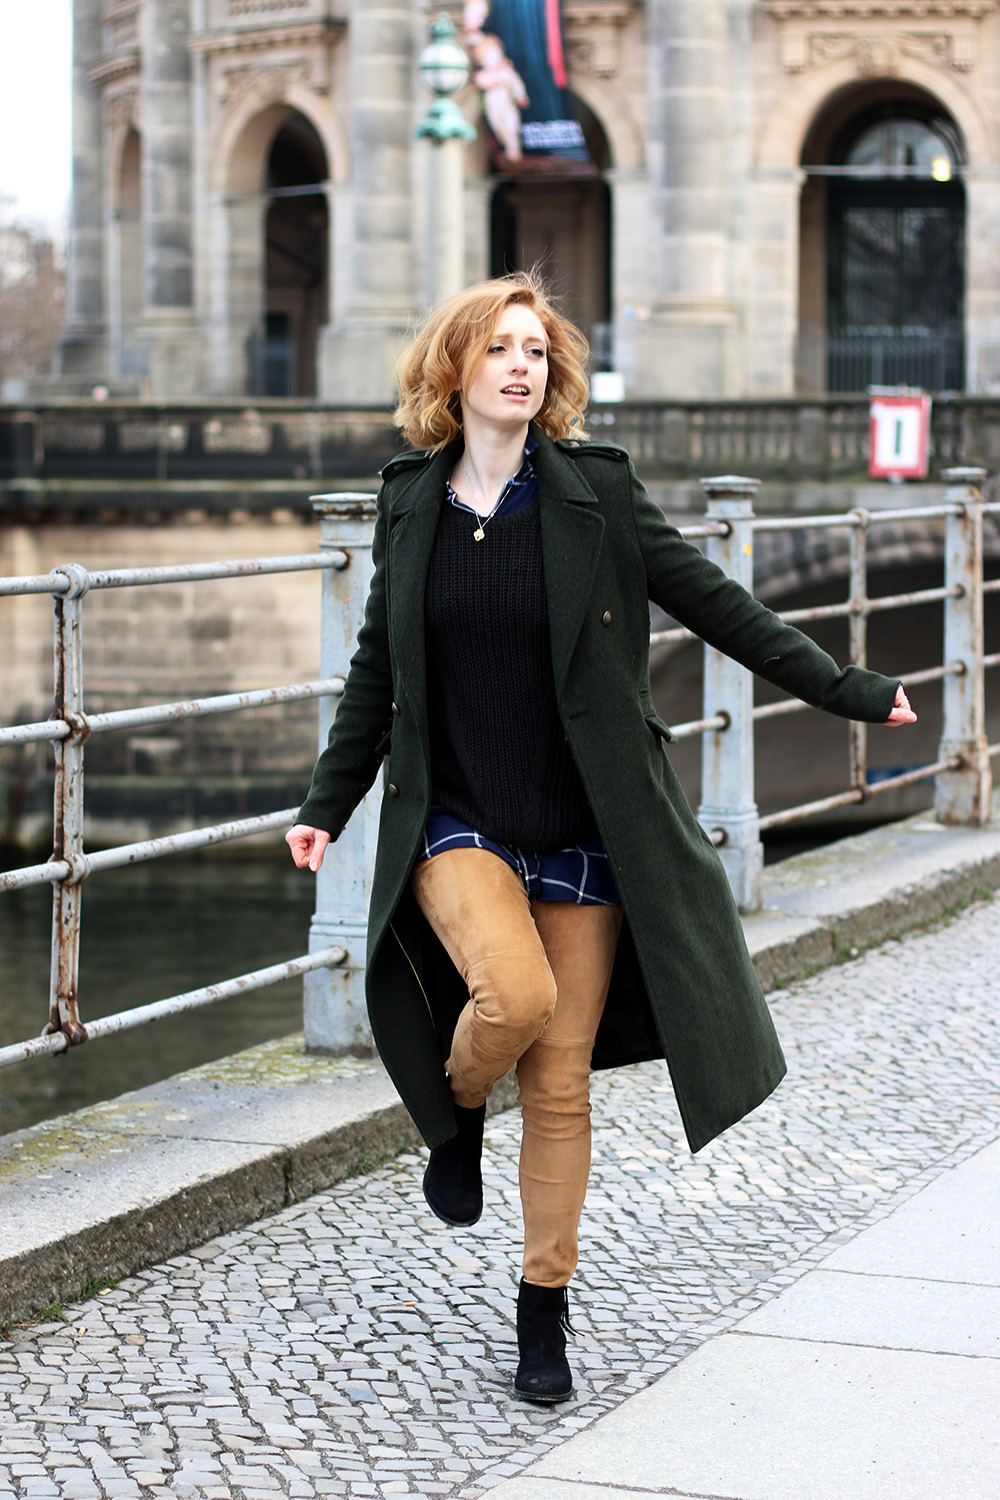 Outtake, Sonntags Quicky, Wochenende, Wochenrückblick, Bademuseum, Outfit, Look, Styling, Layering, Mode Blog, Advance Your Style, advanceyourstyle, Influencer